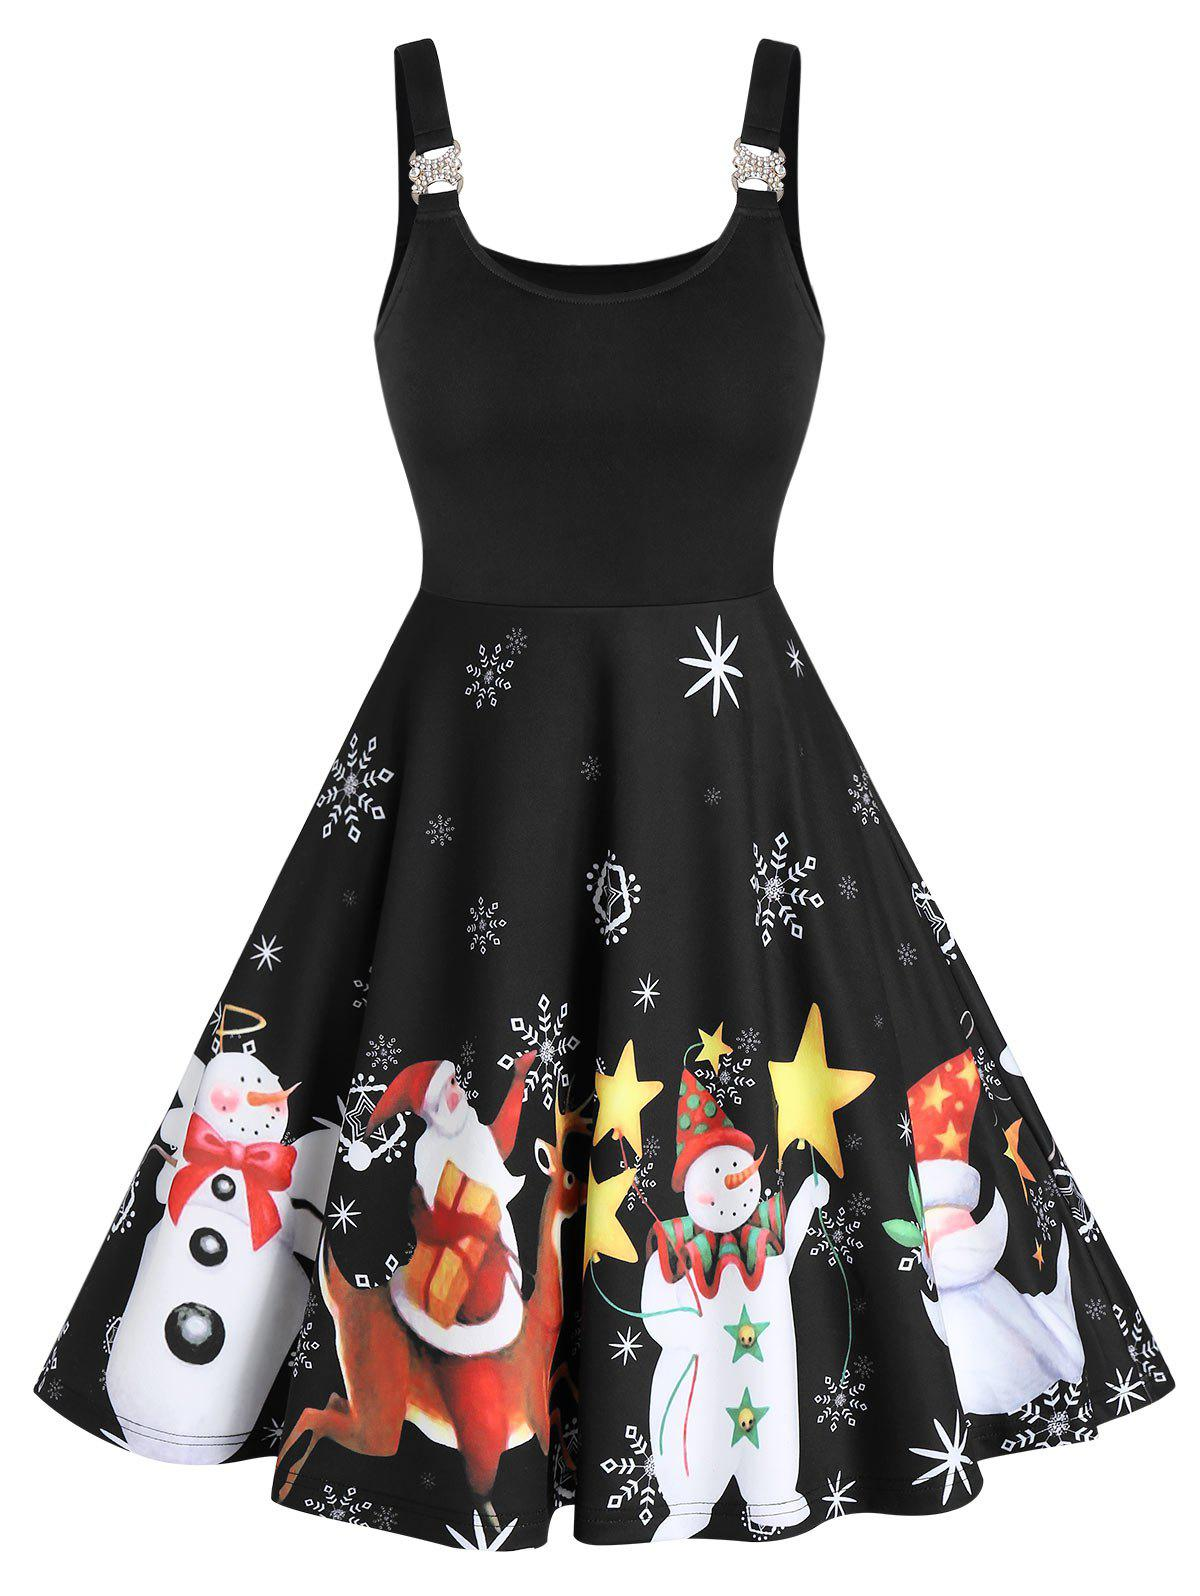 Christmas Santa Claus Snowman Print Sleeveless Flare Dress - multicolor A 2XL